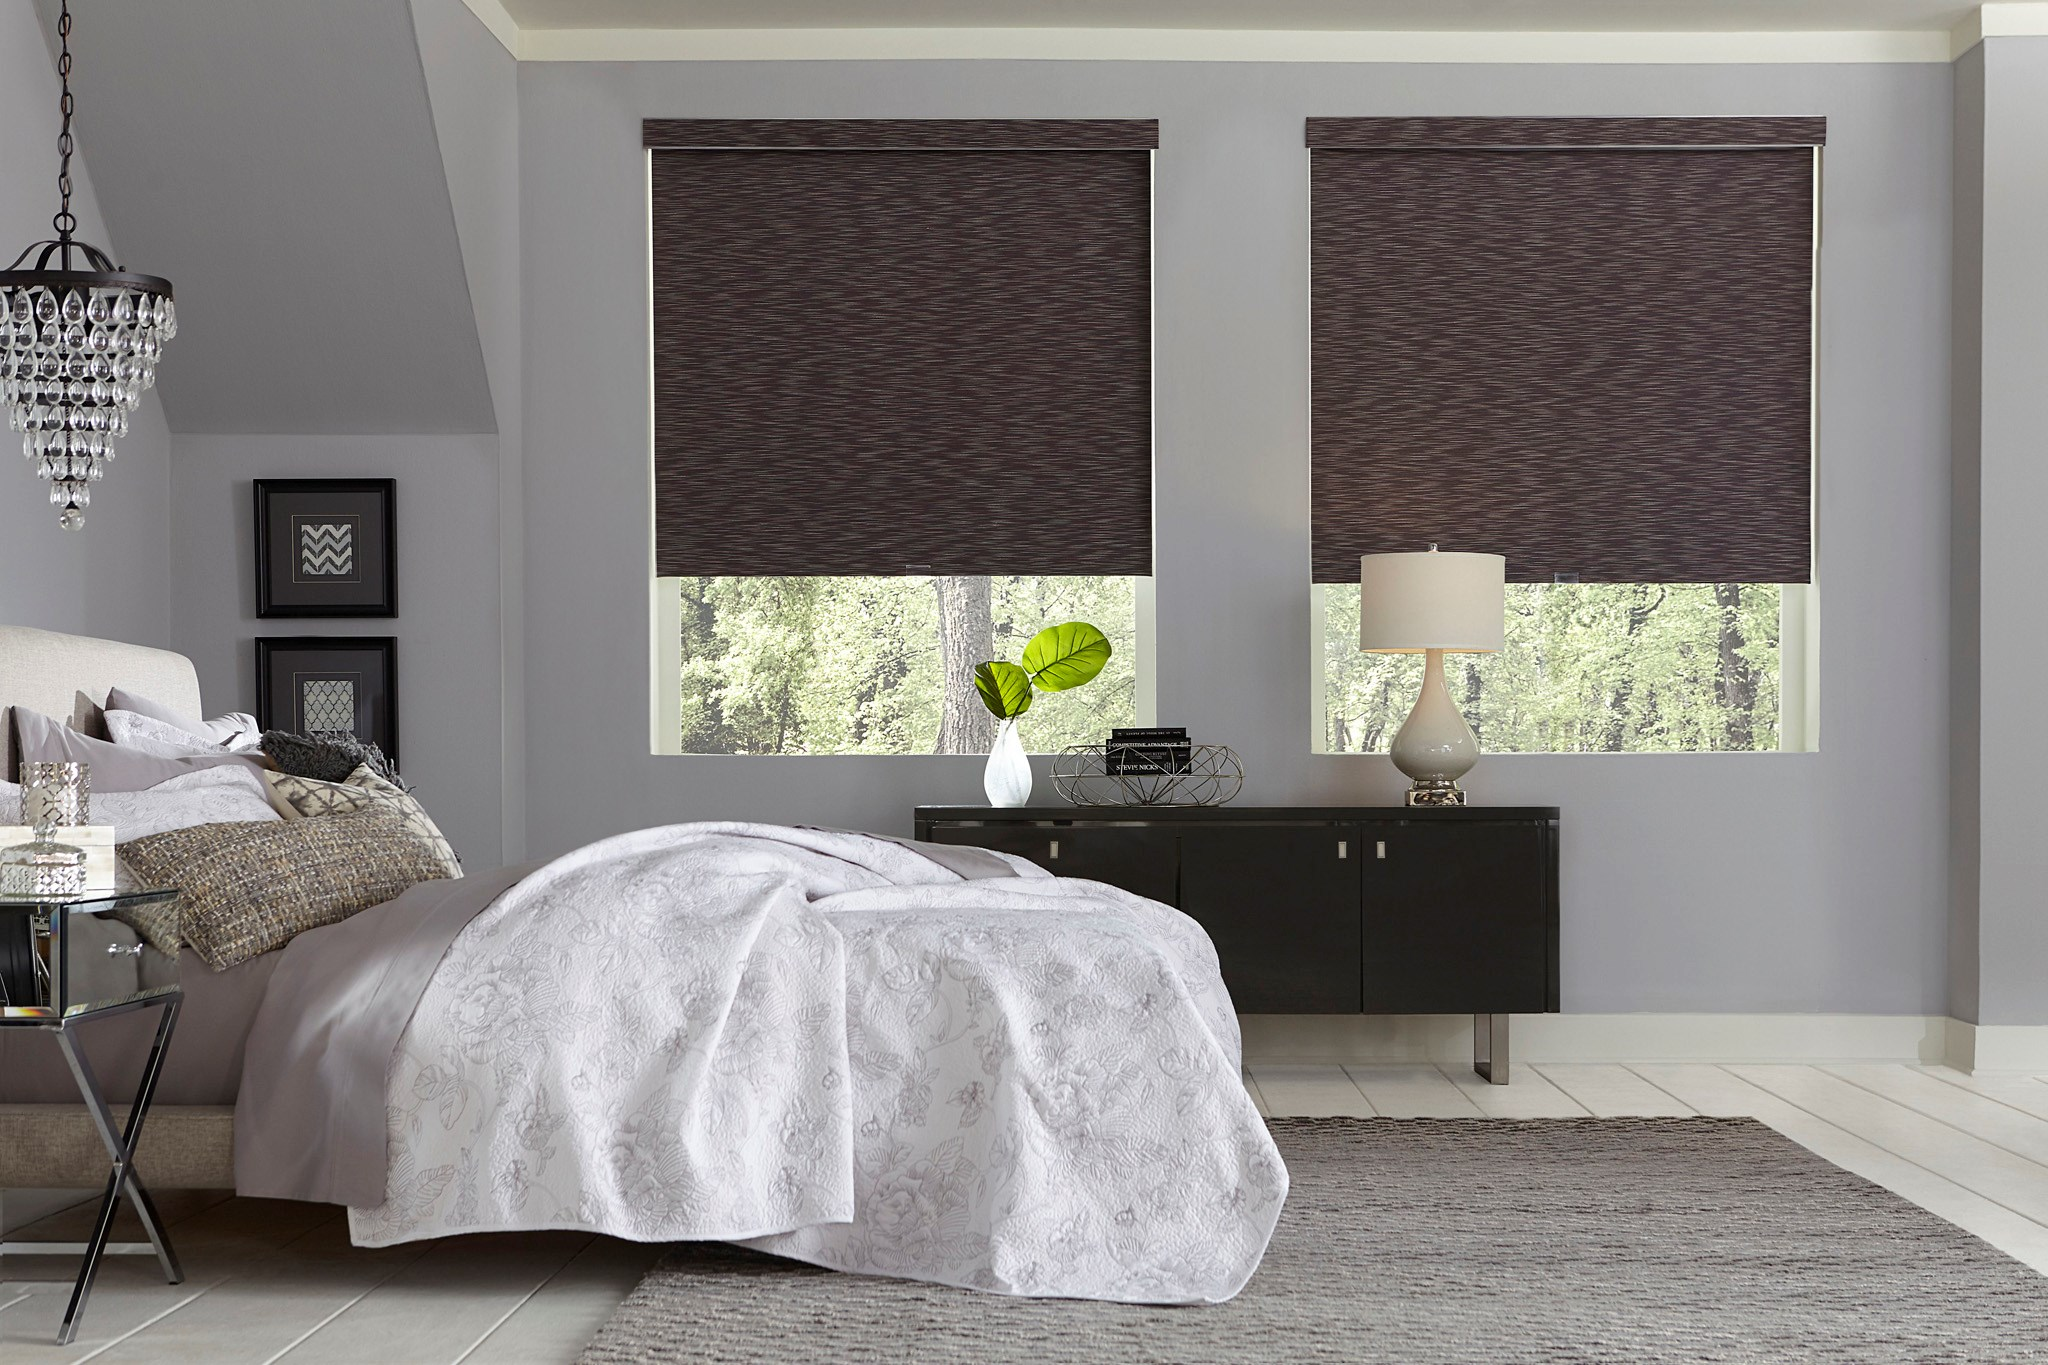 Signature Natural Blackout Roller Shade Photo Gallery